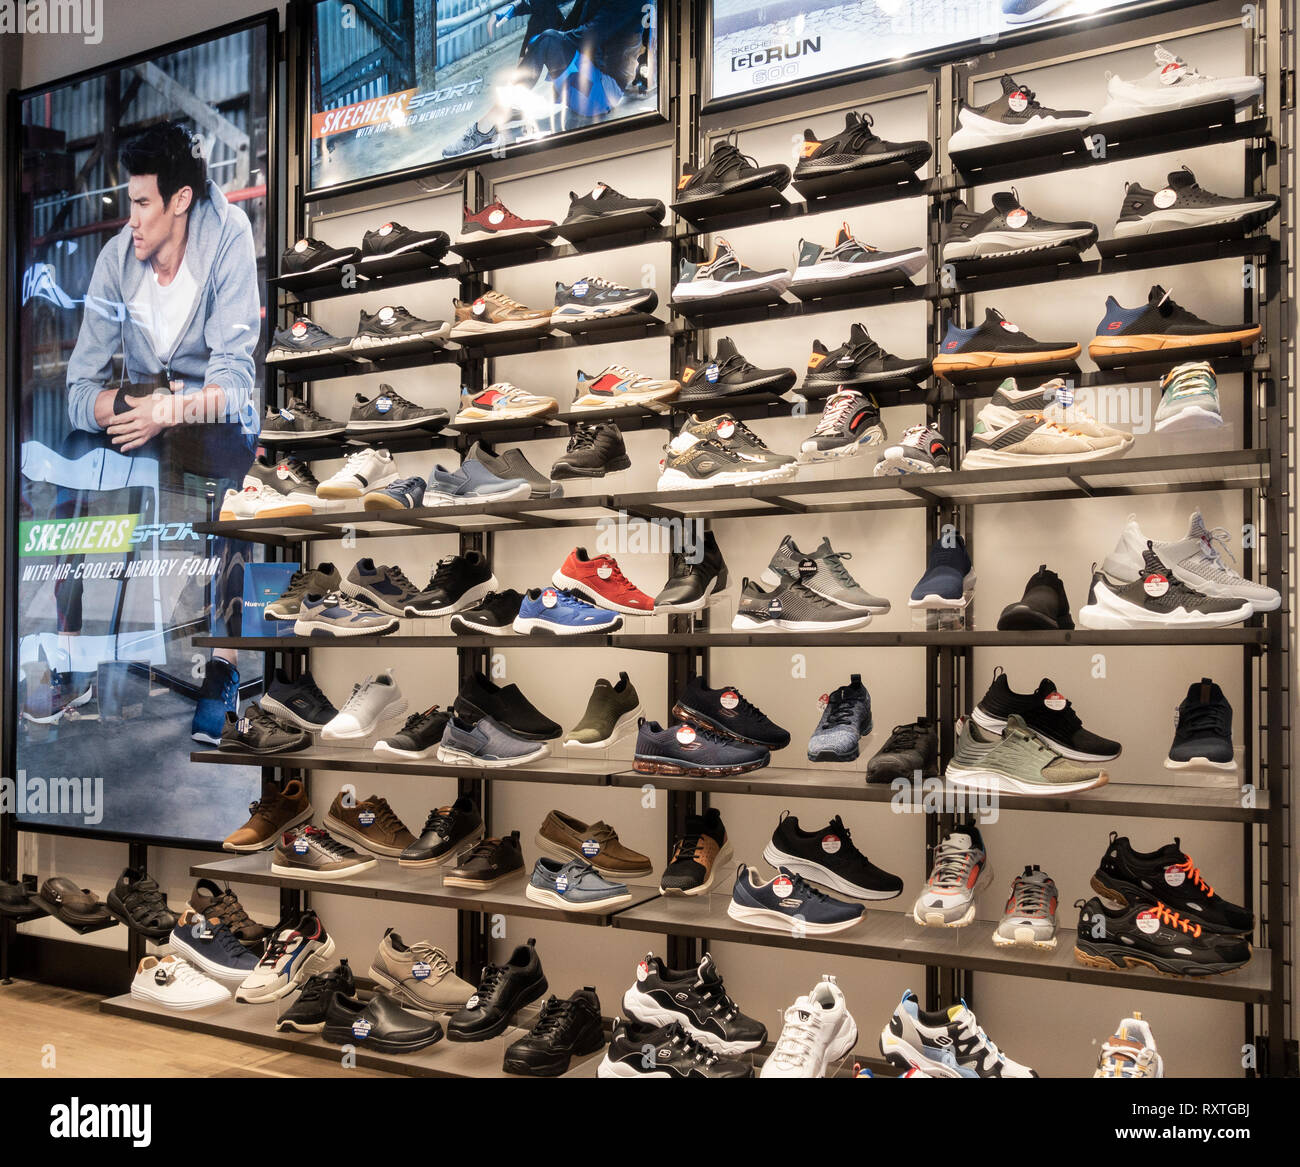 Sketchers footwear store in Spain - Stock Image